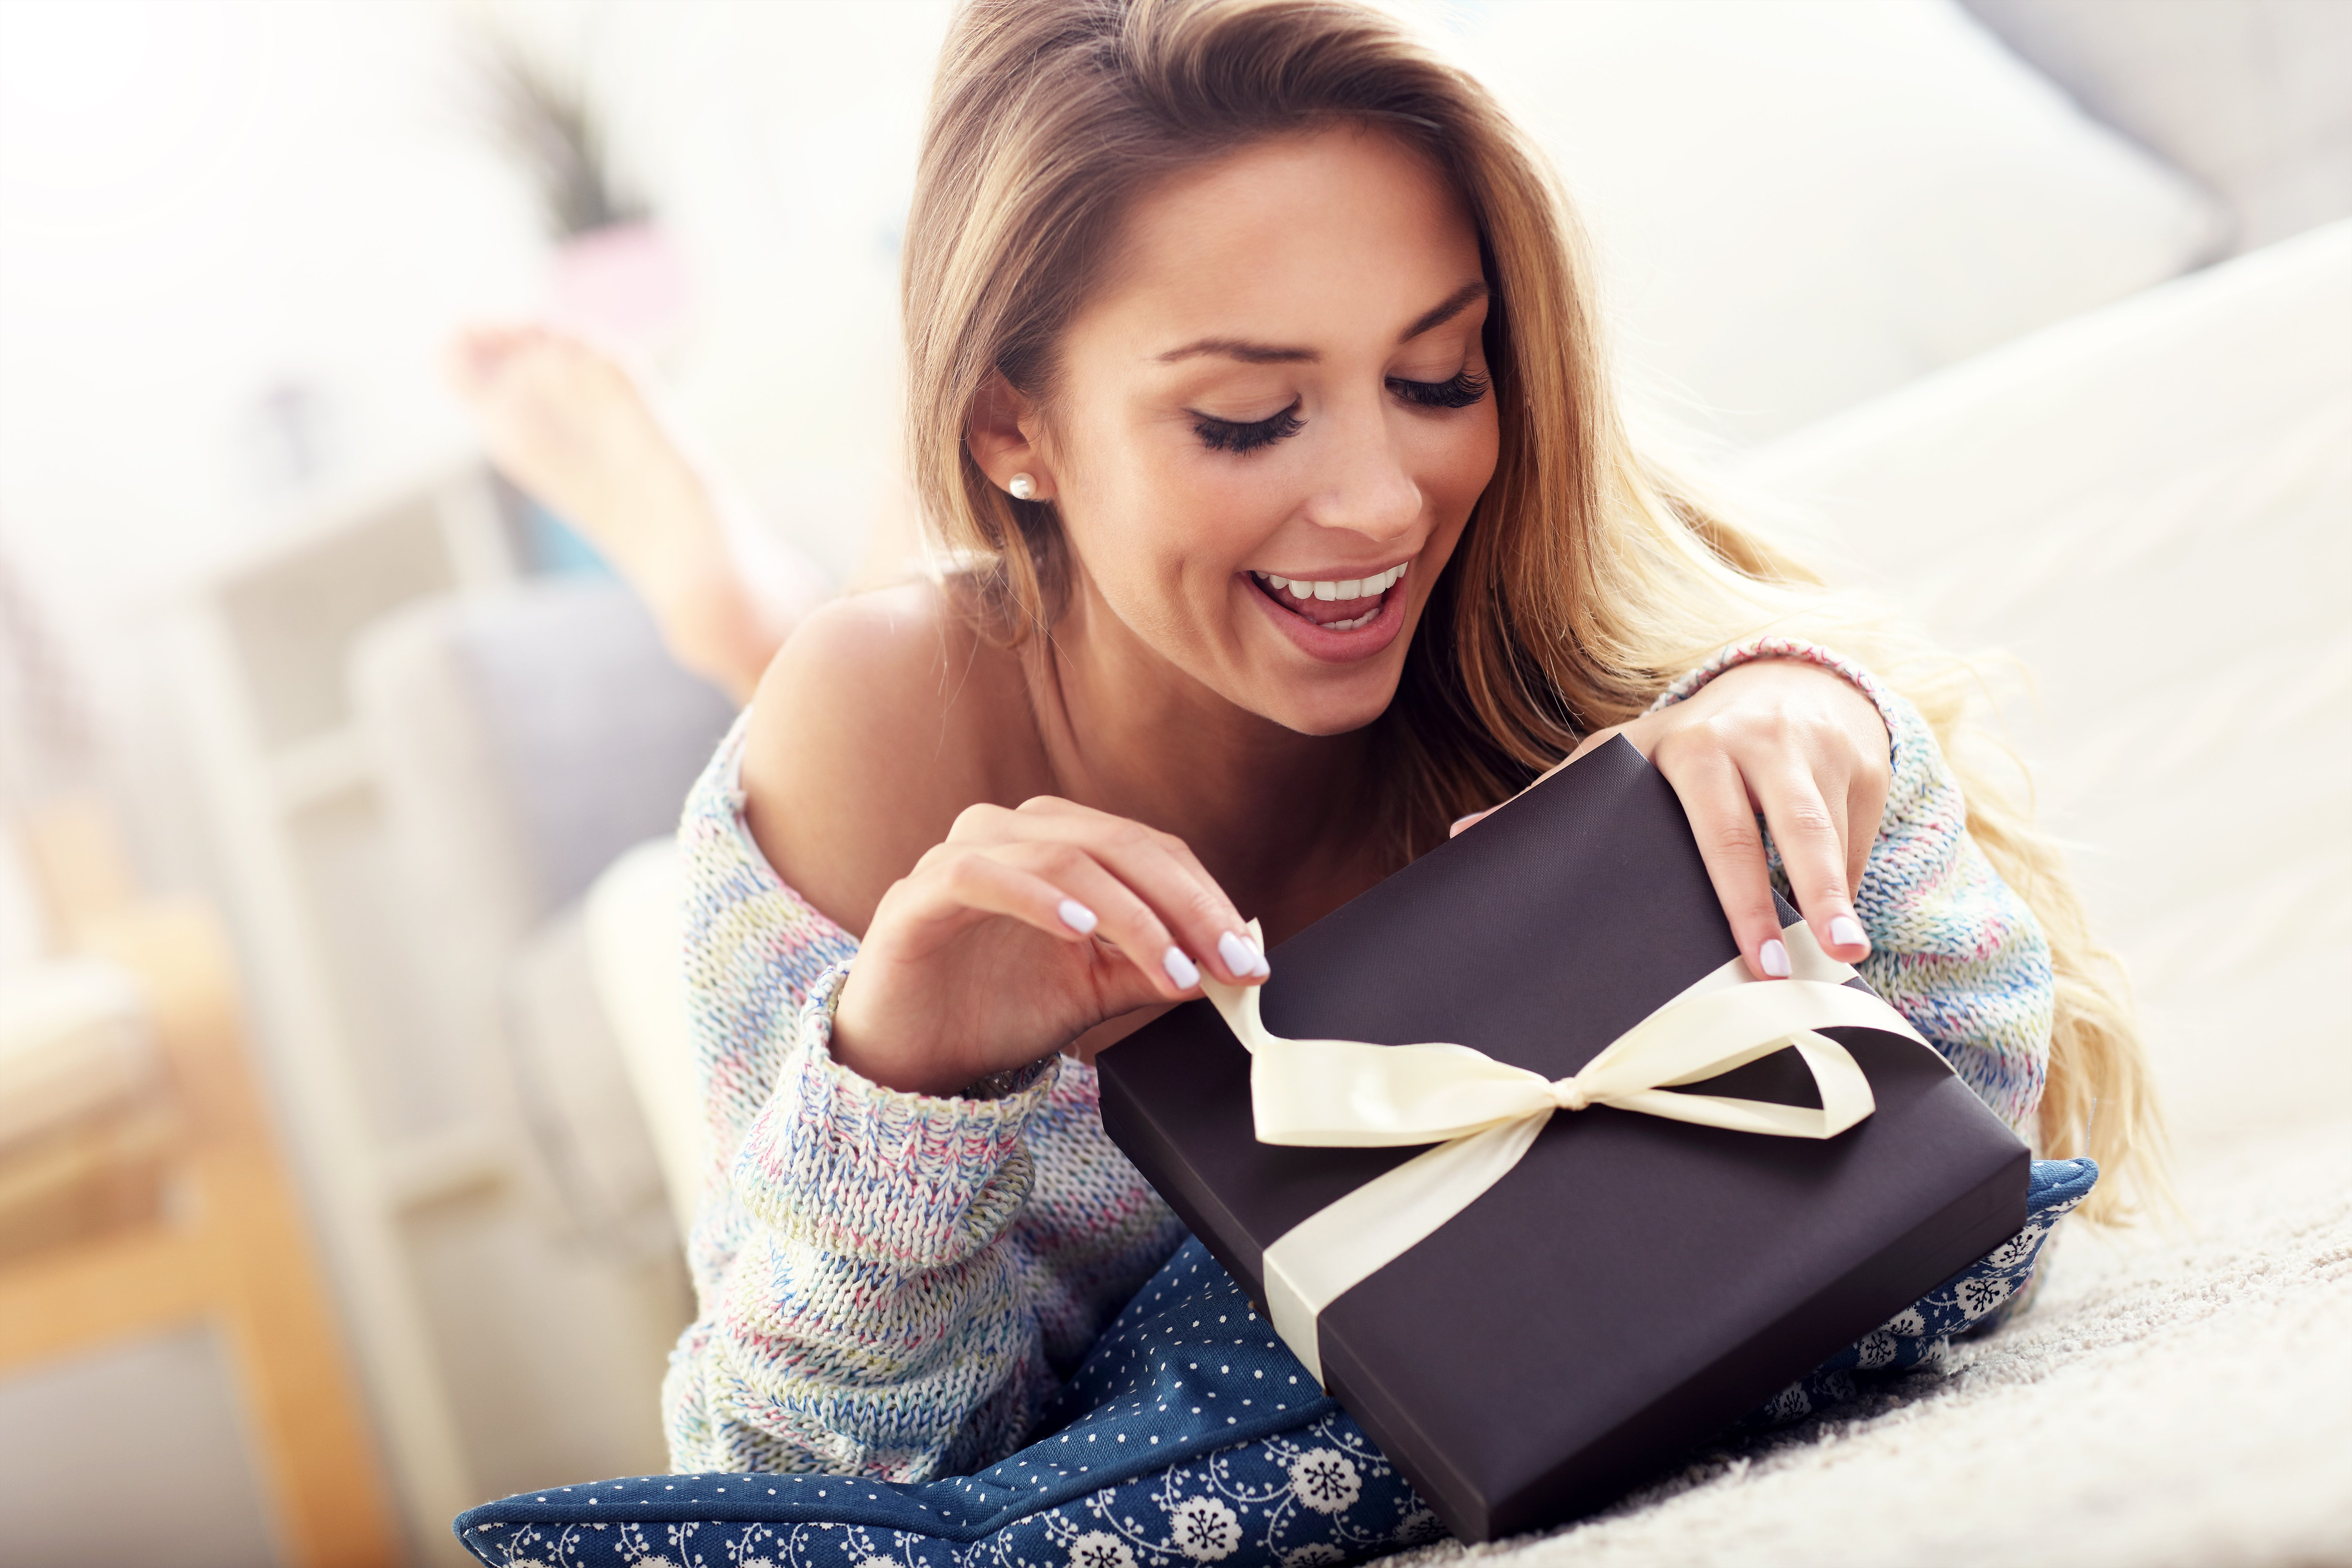 Woman excitedly opening a wrapped gift. | Source: Shutterstock